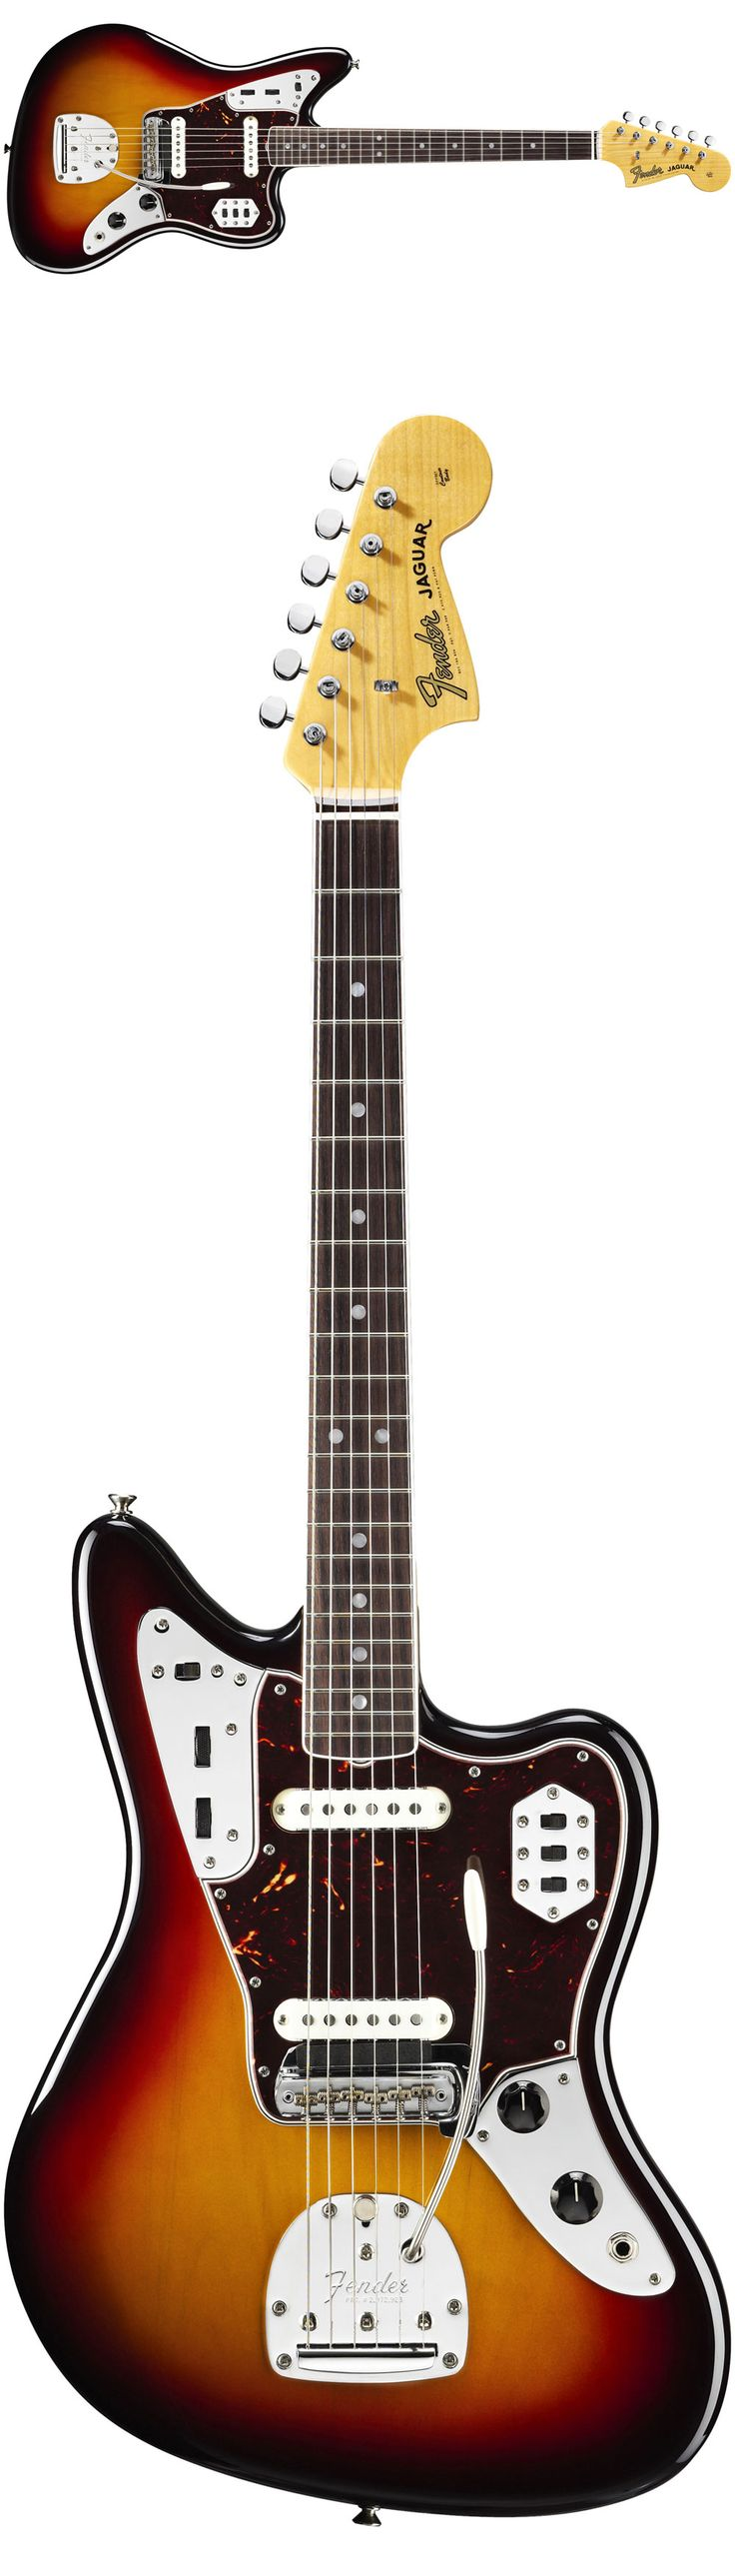 the history of the electric guitar essay For example the earliest guitars doubled as weapons such as small hunting bows essays related to history of the guitar 1 history of the guitar the guitar's history can be traced back in time through monuments.